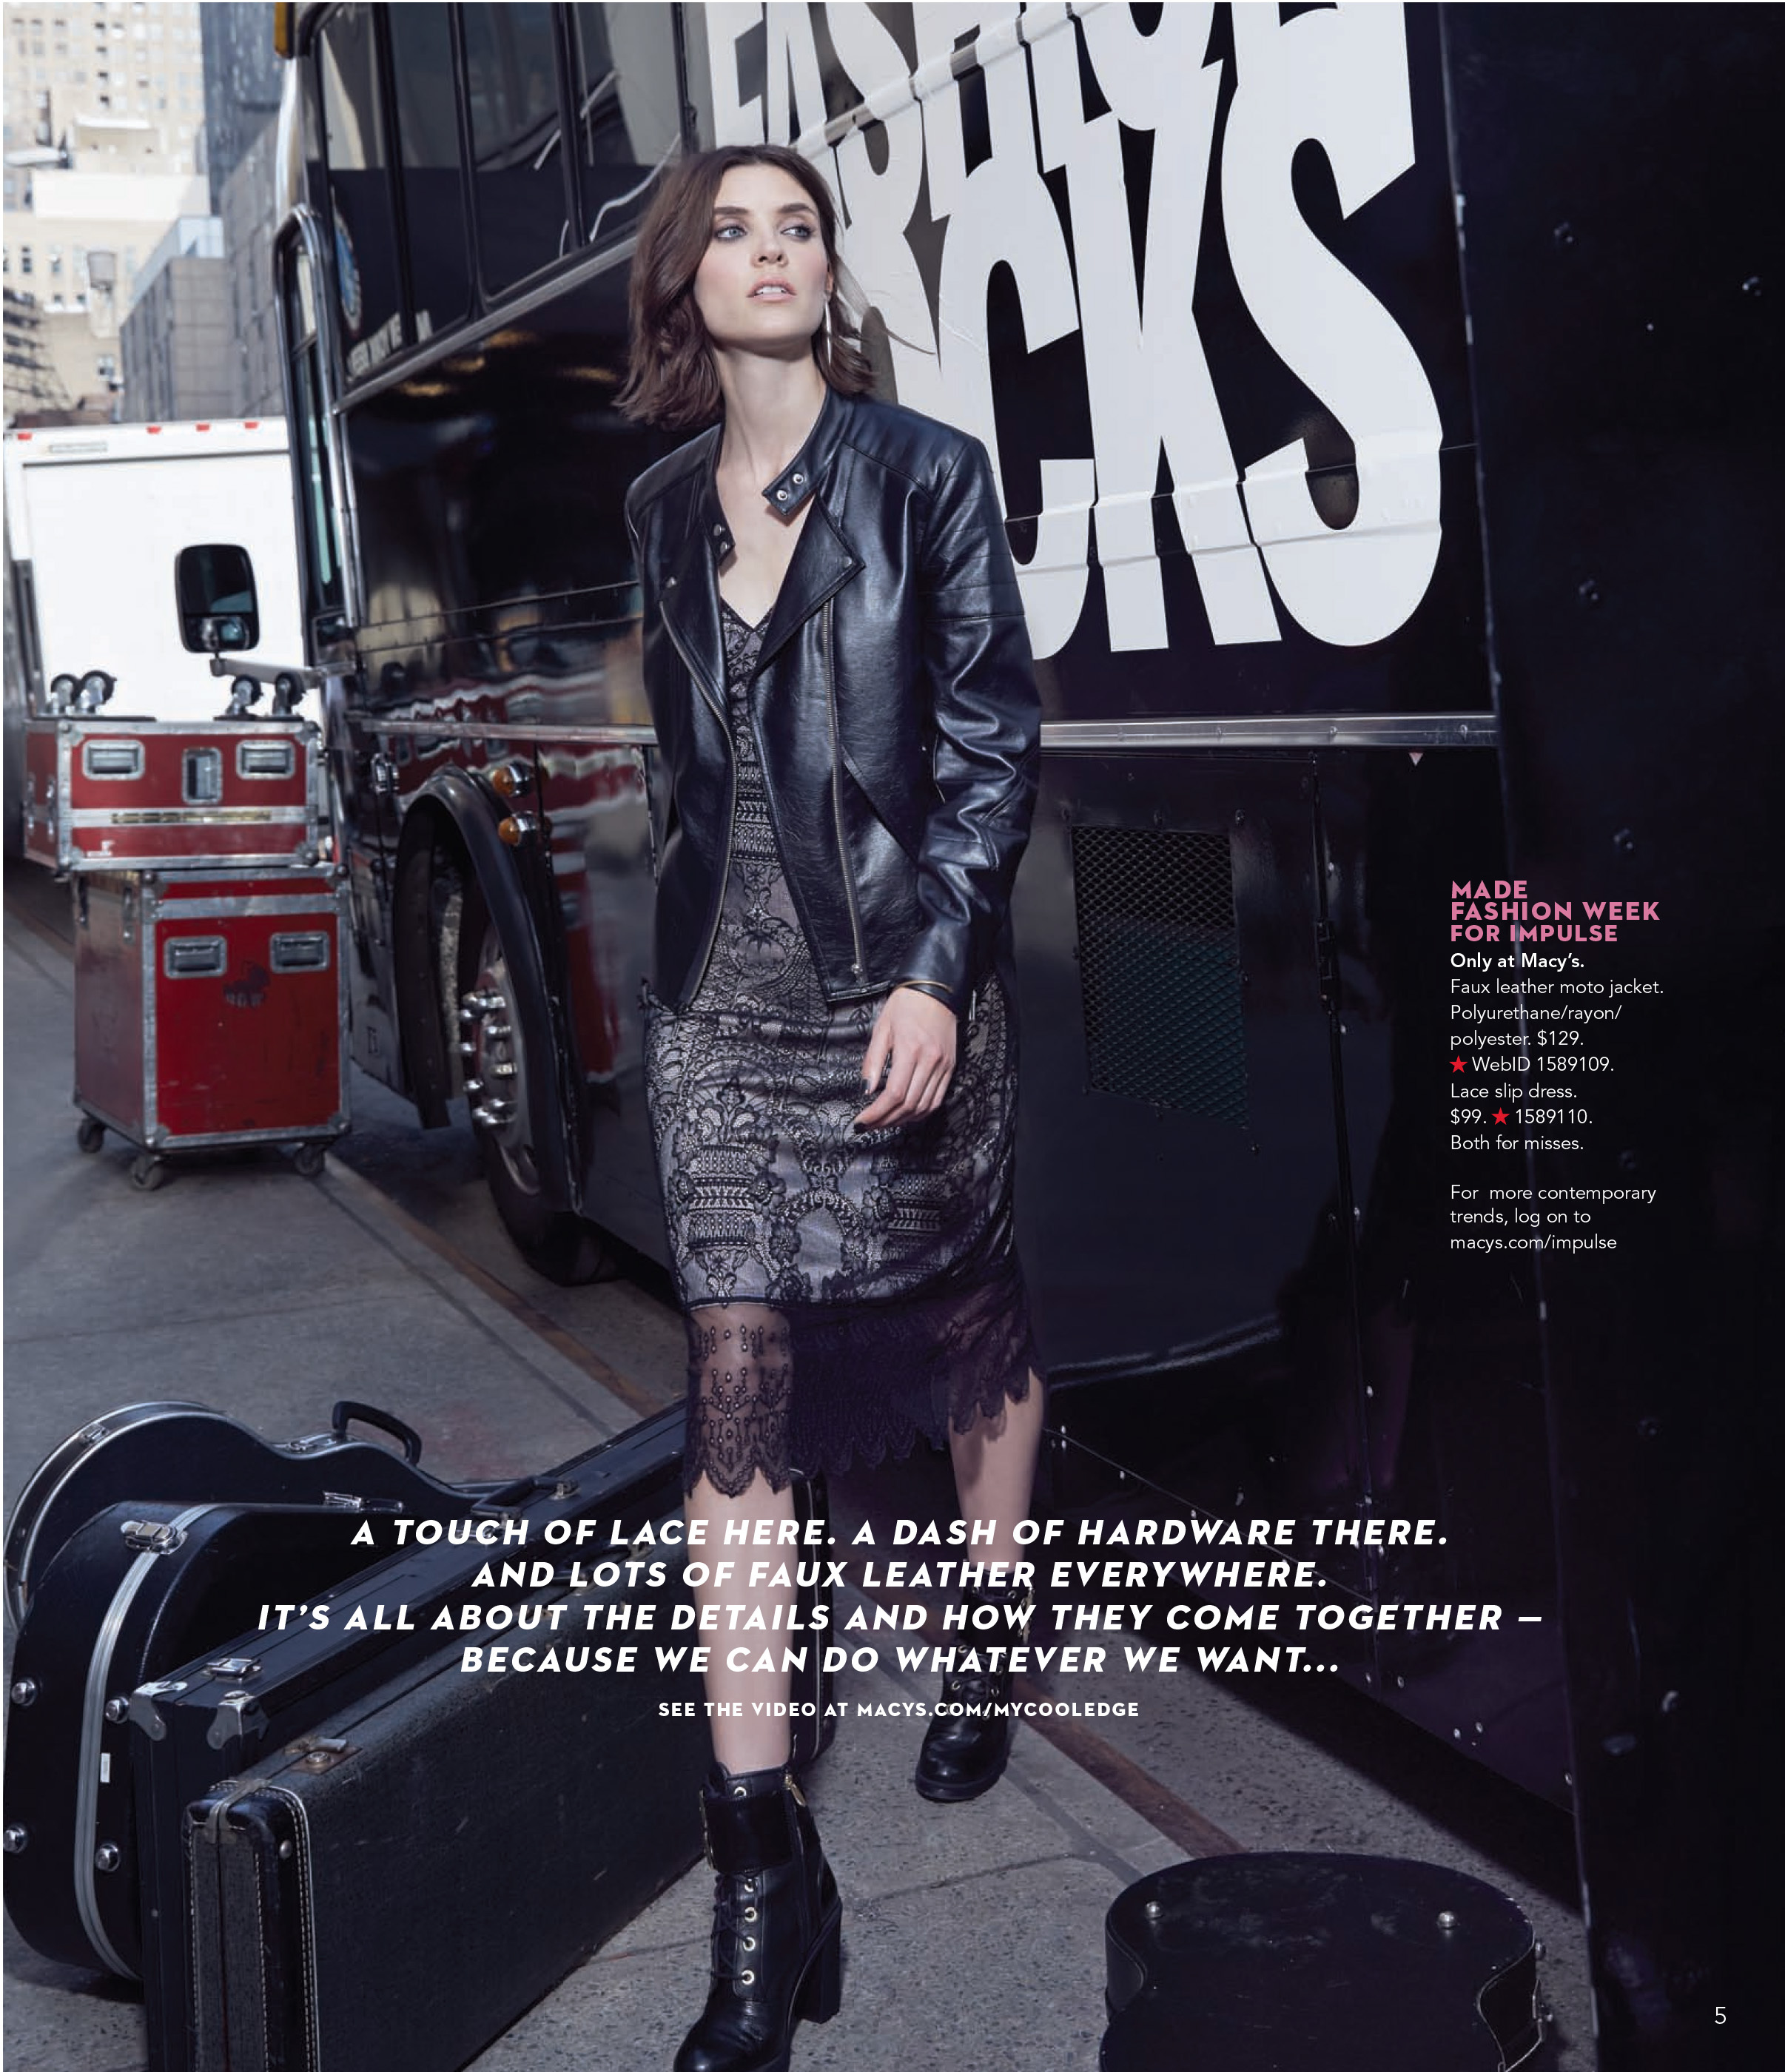 Fashion Rocks(R) at Macy's this Fall as the retailer partners with the acclaimed event to celebrate fashion and music at Macy's stores nationwide. (Photo: Business Wire)